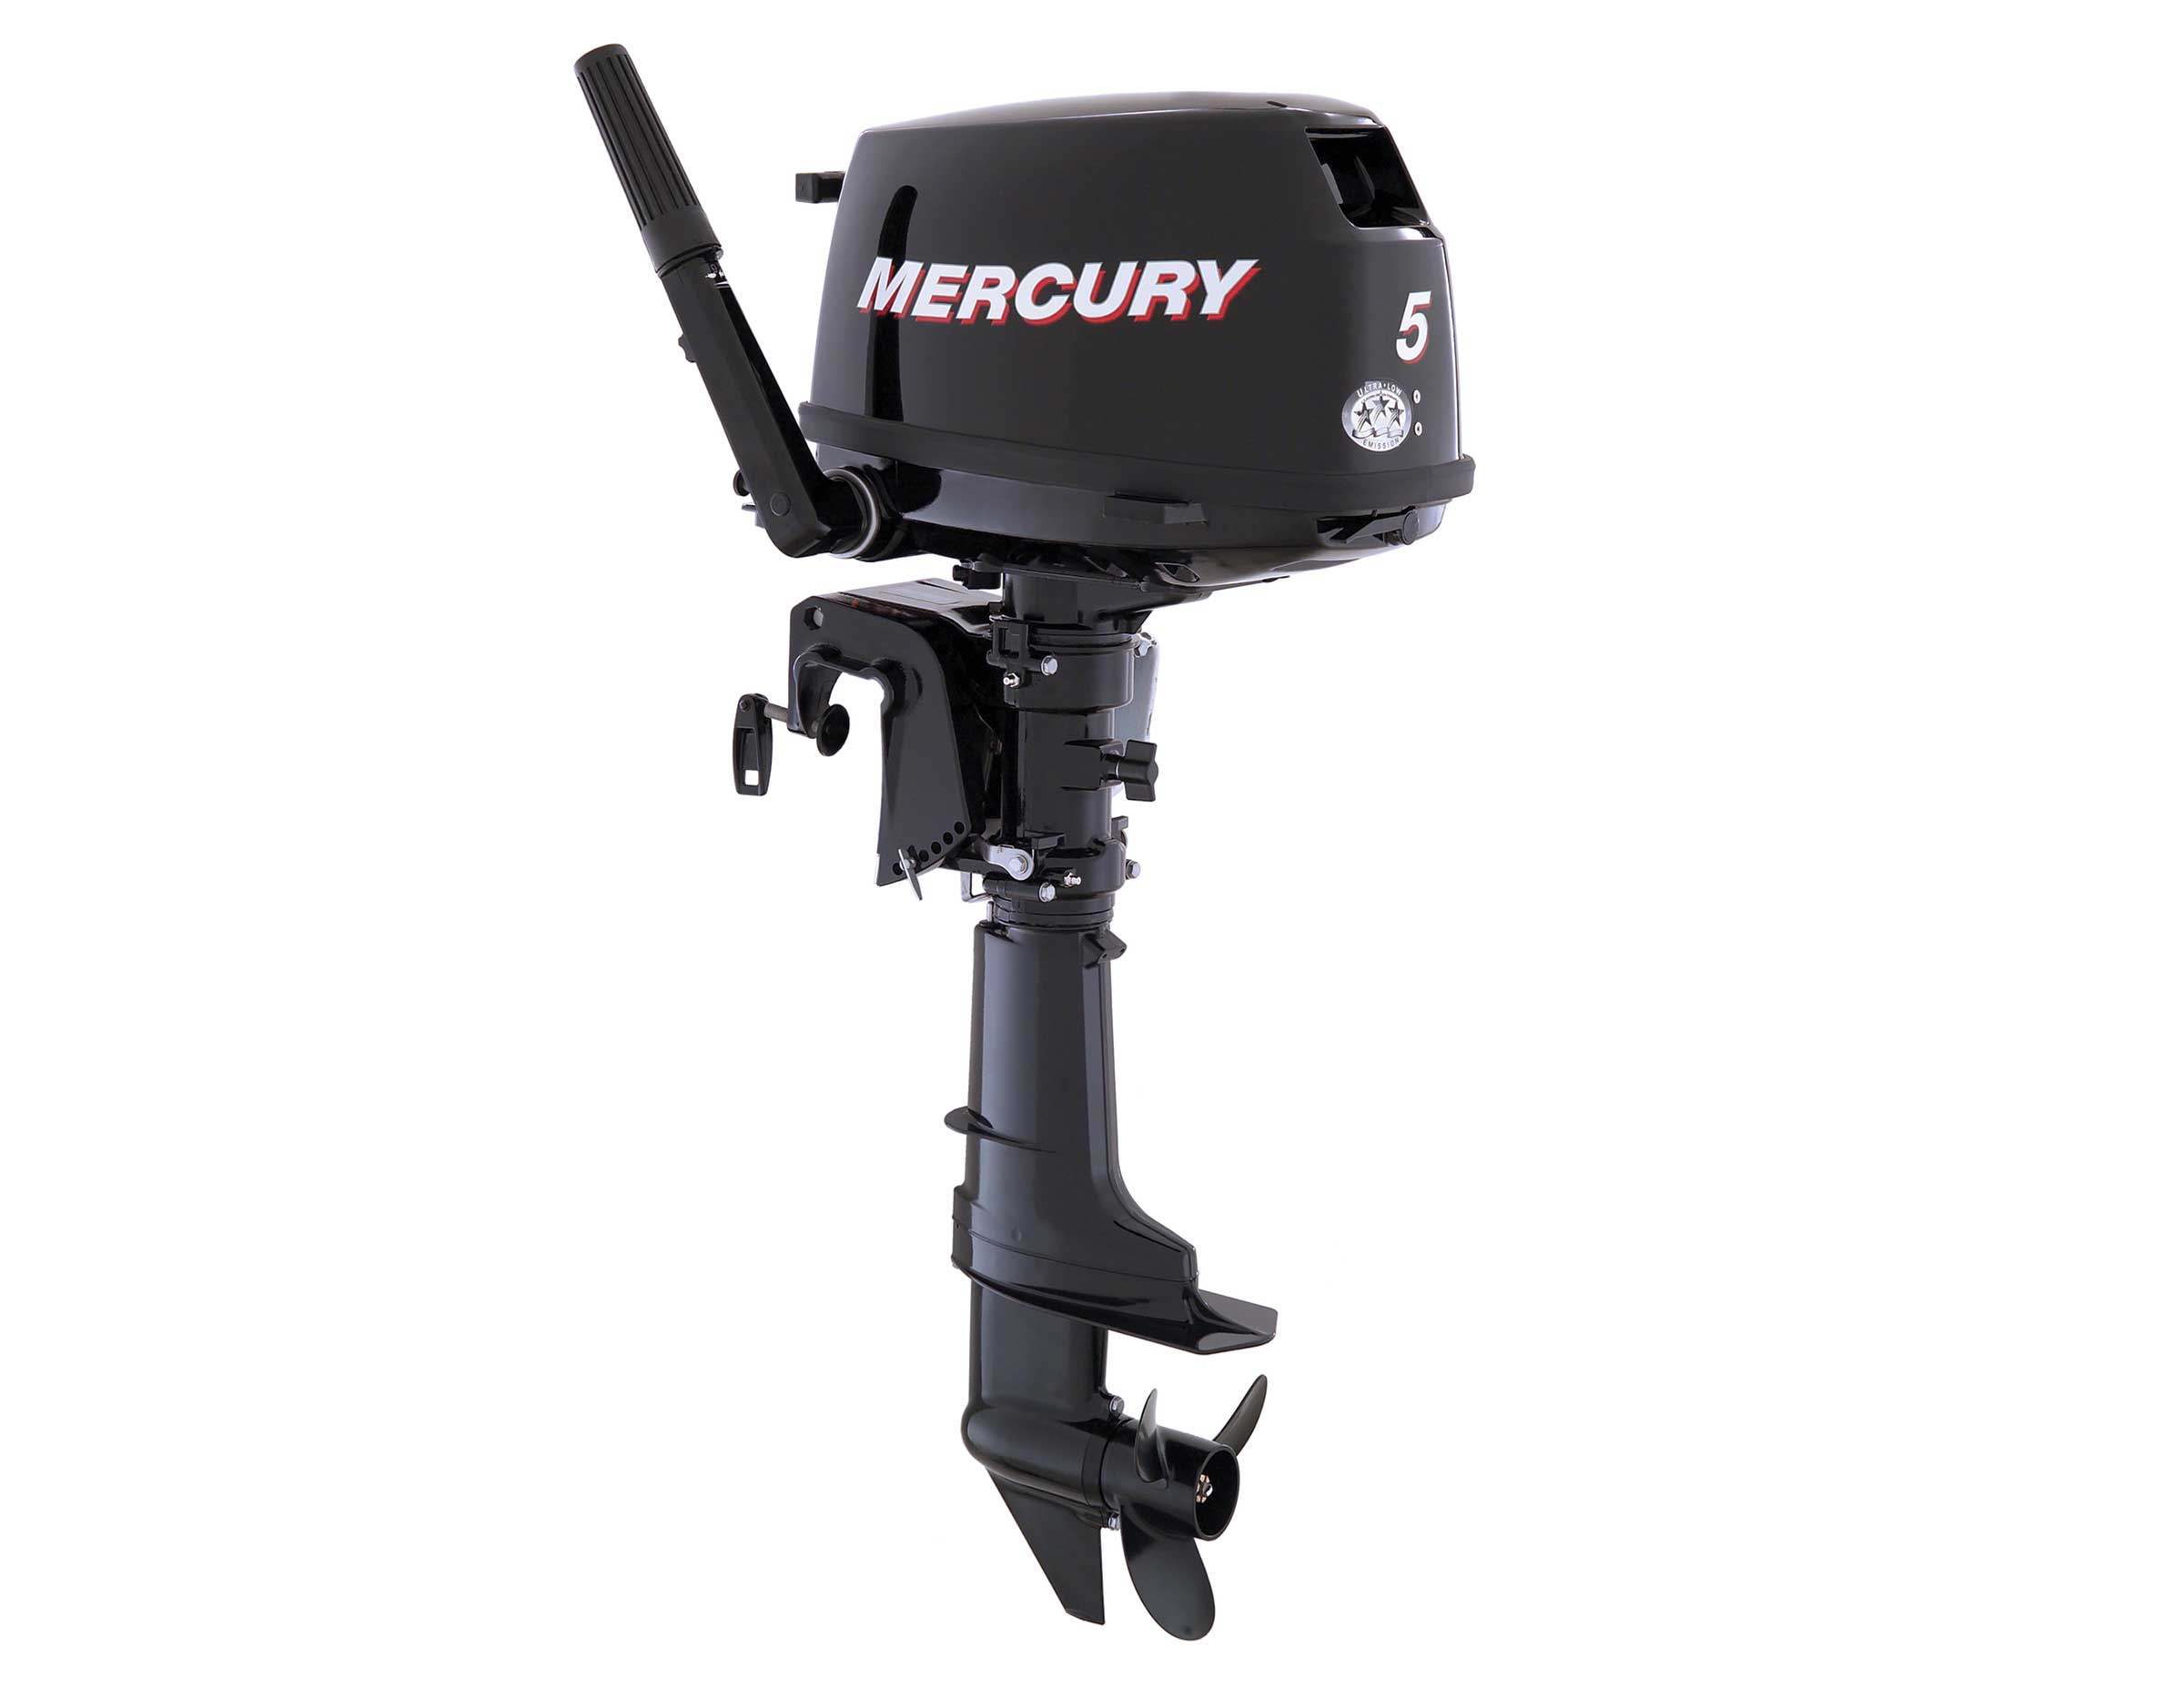 Mercury Portable Motor